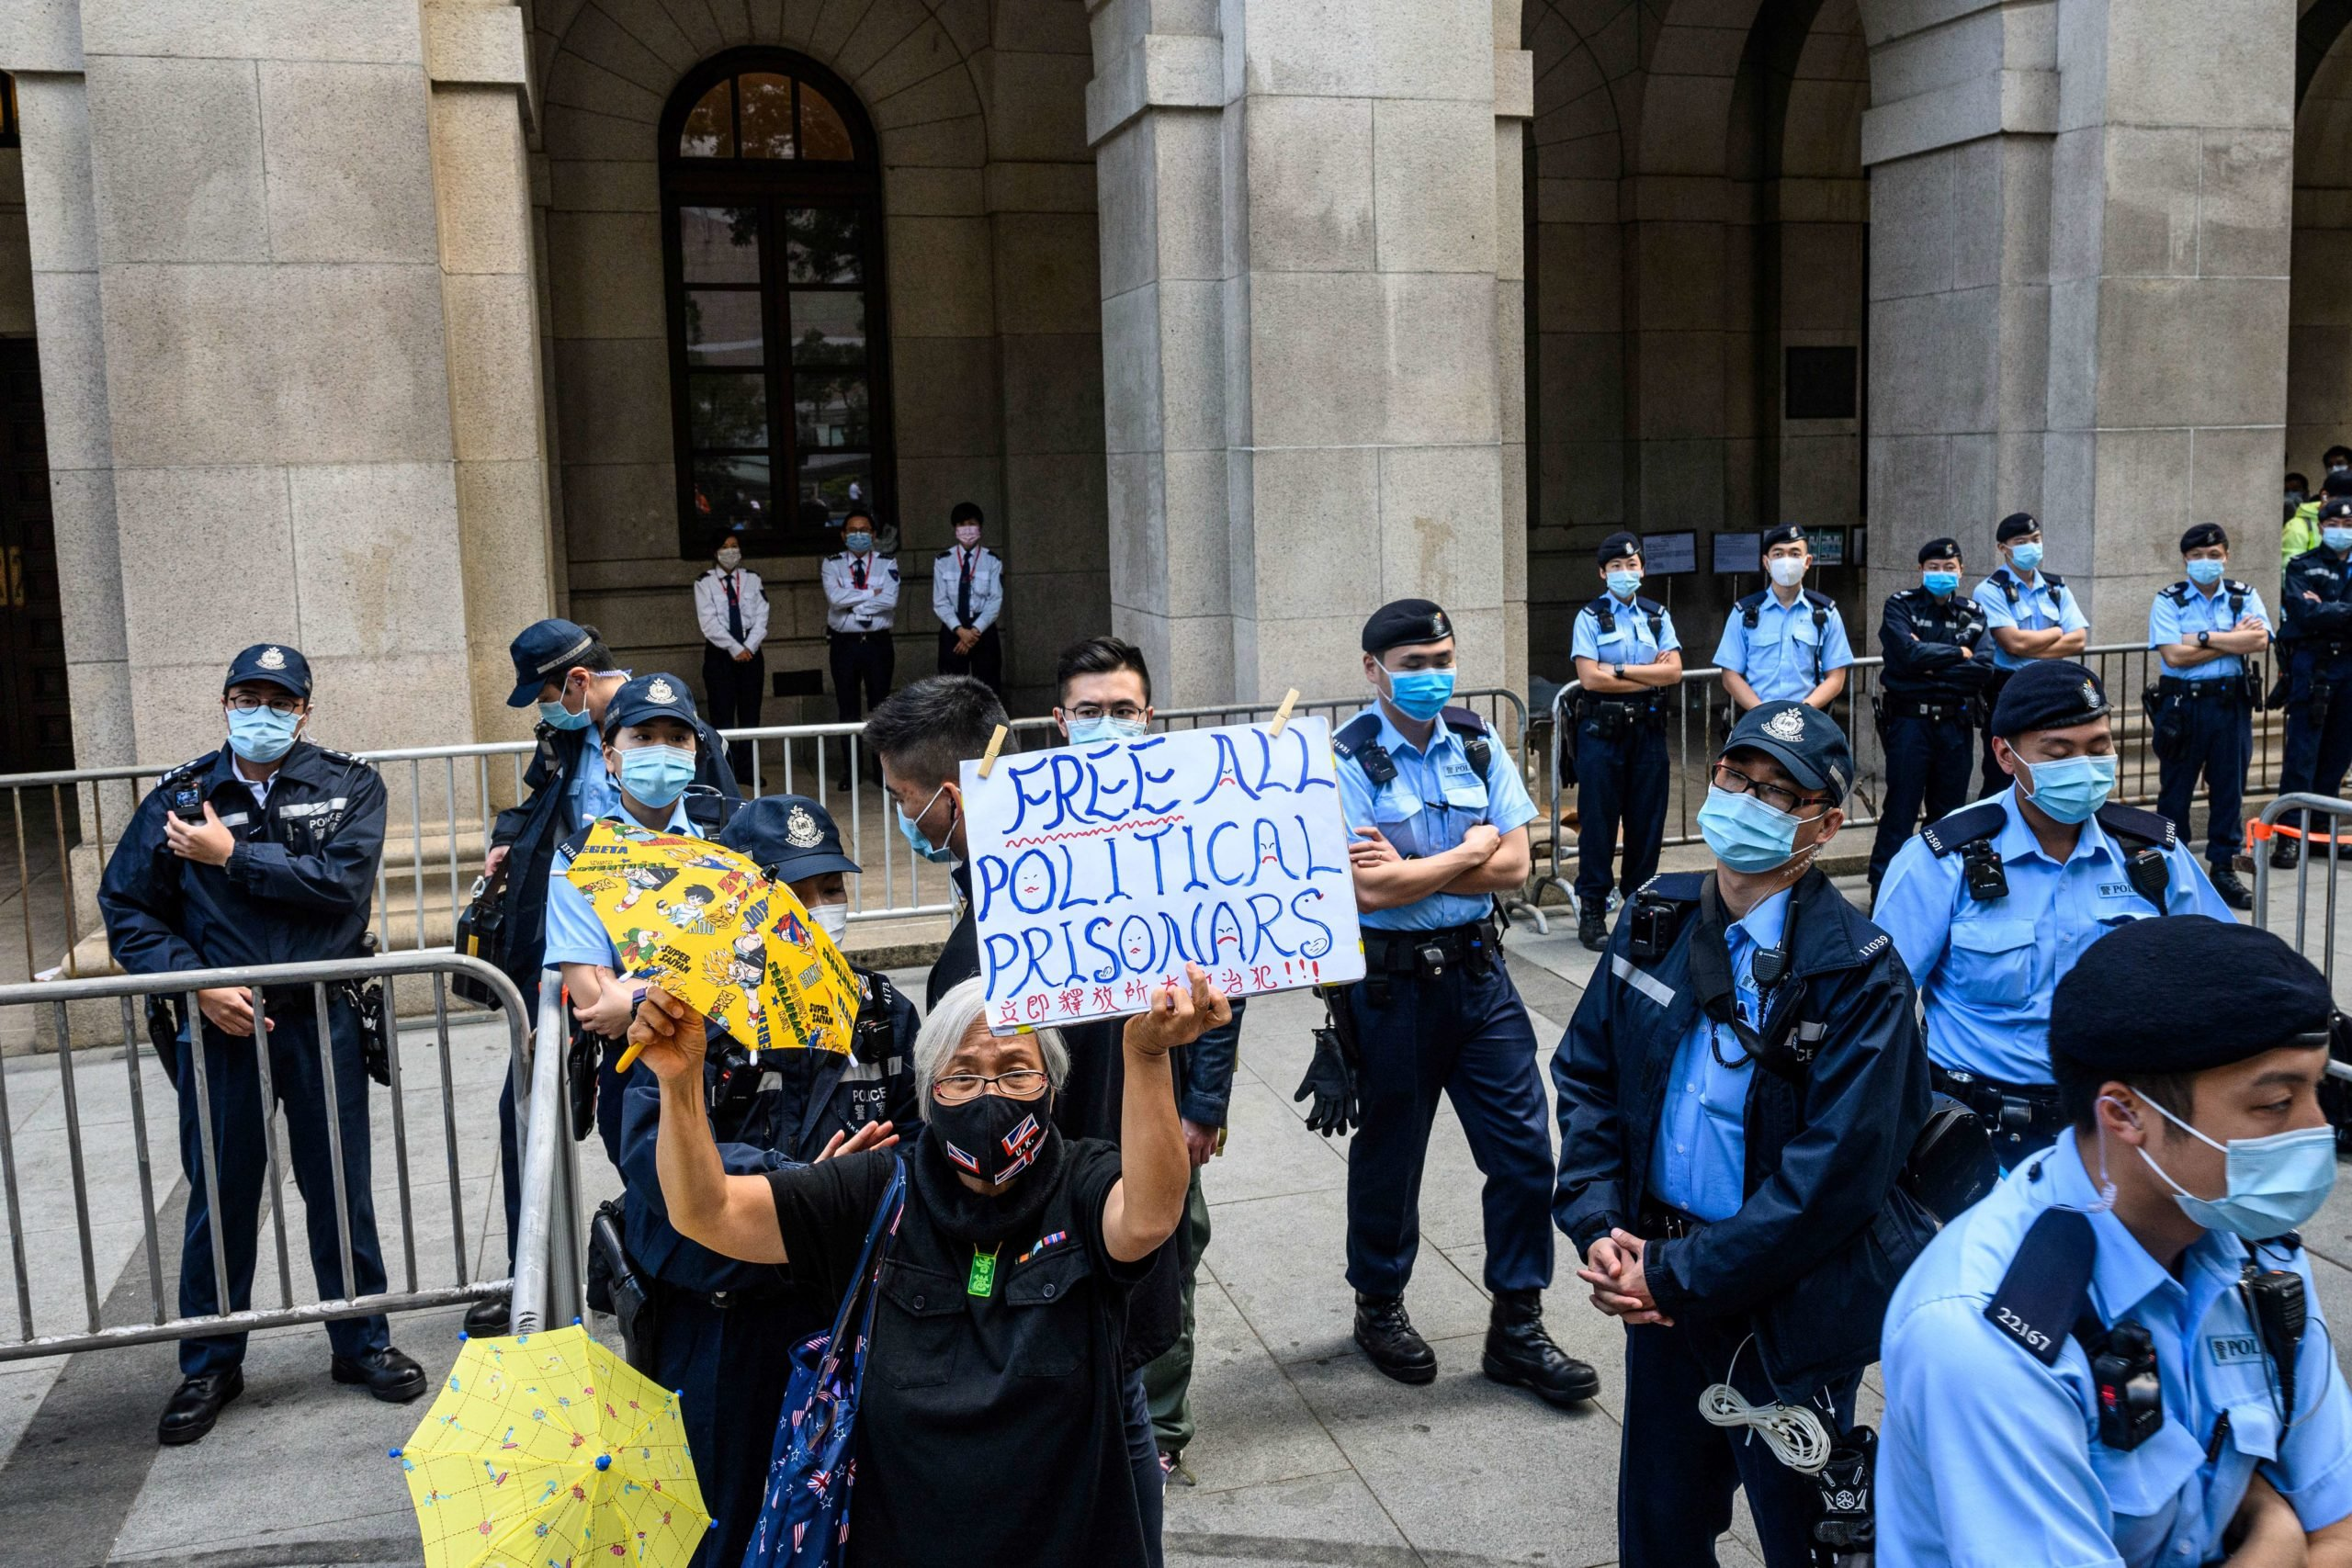 A pro-democracy activist holds up a placard as police stand guard outside the Court of Final Appeal in Hong Kong on February 1, 2021. (ANTHONY WALLACE/AFP via Getty Images)